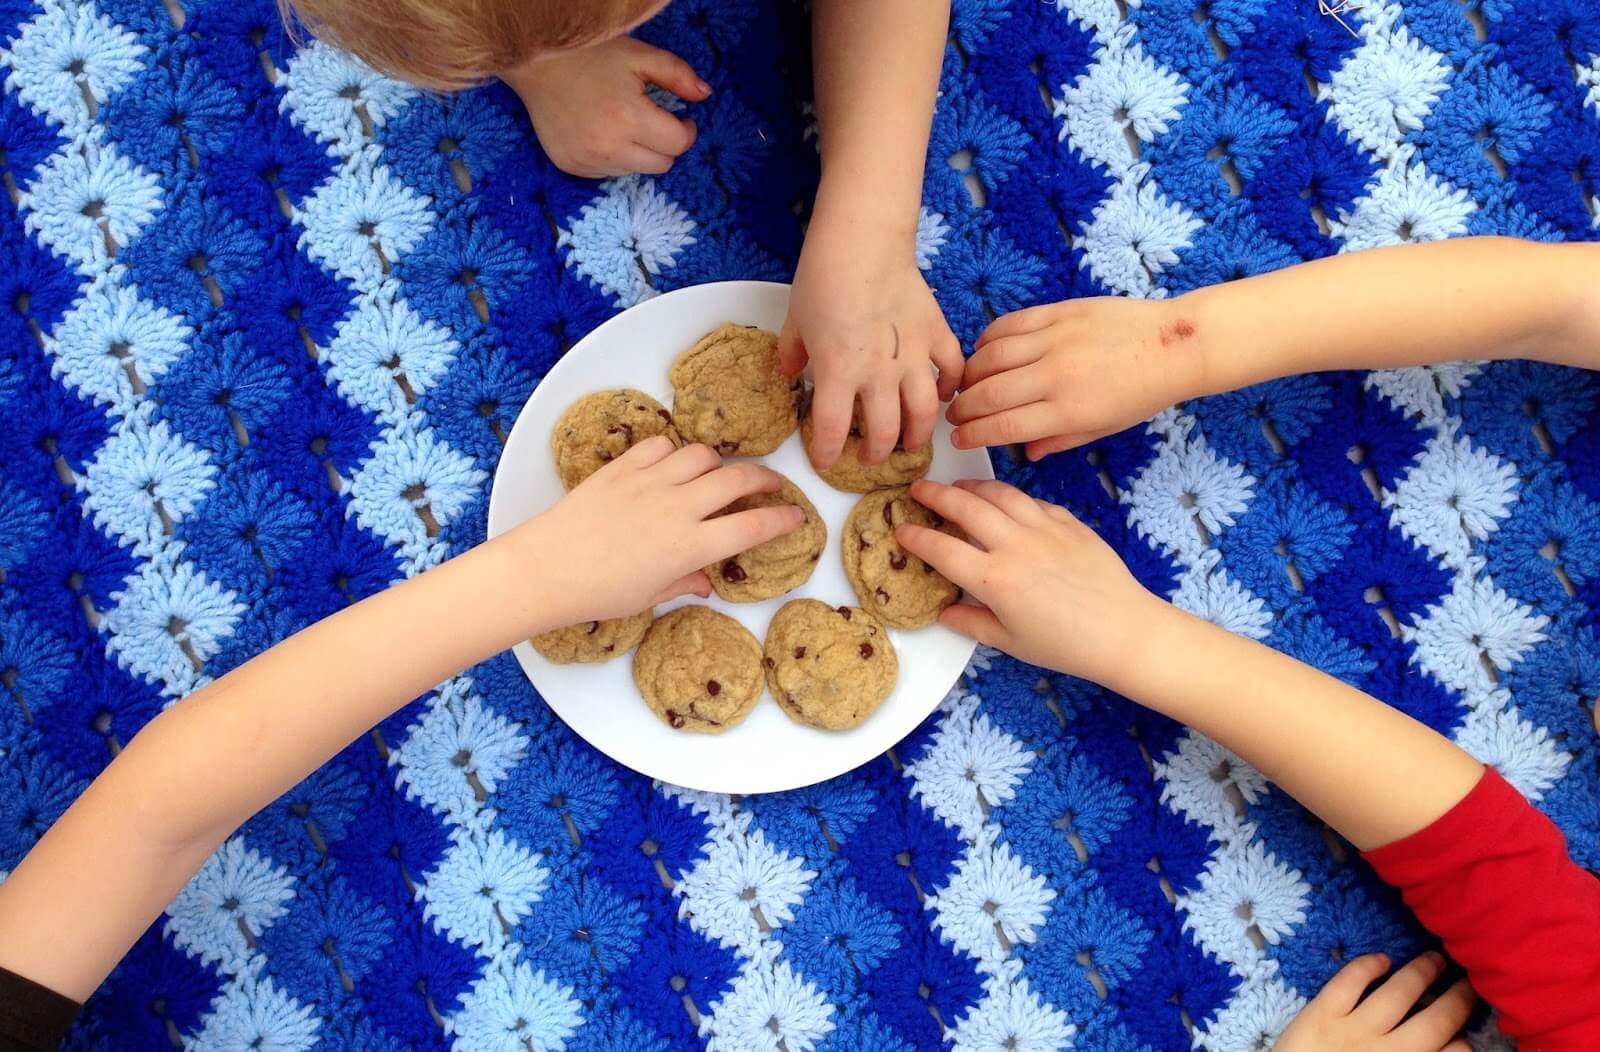 little hands grabbing cookies